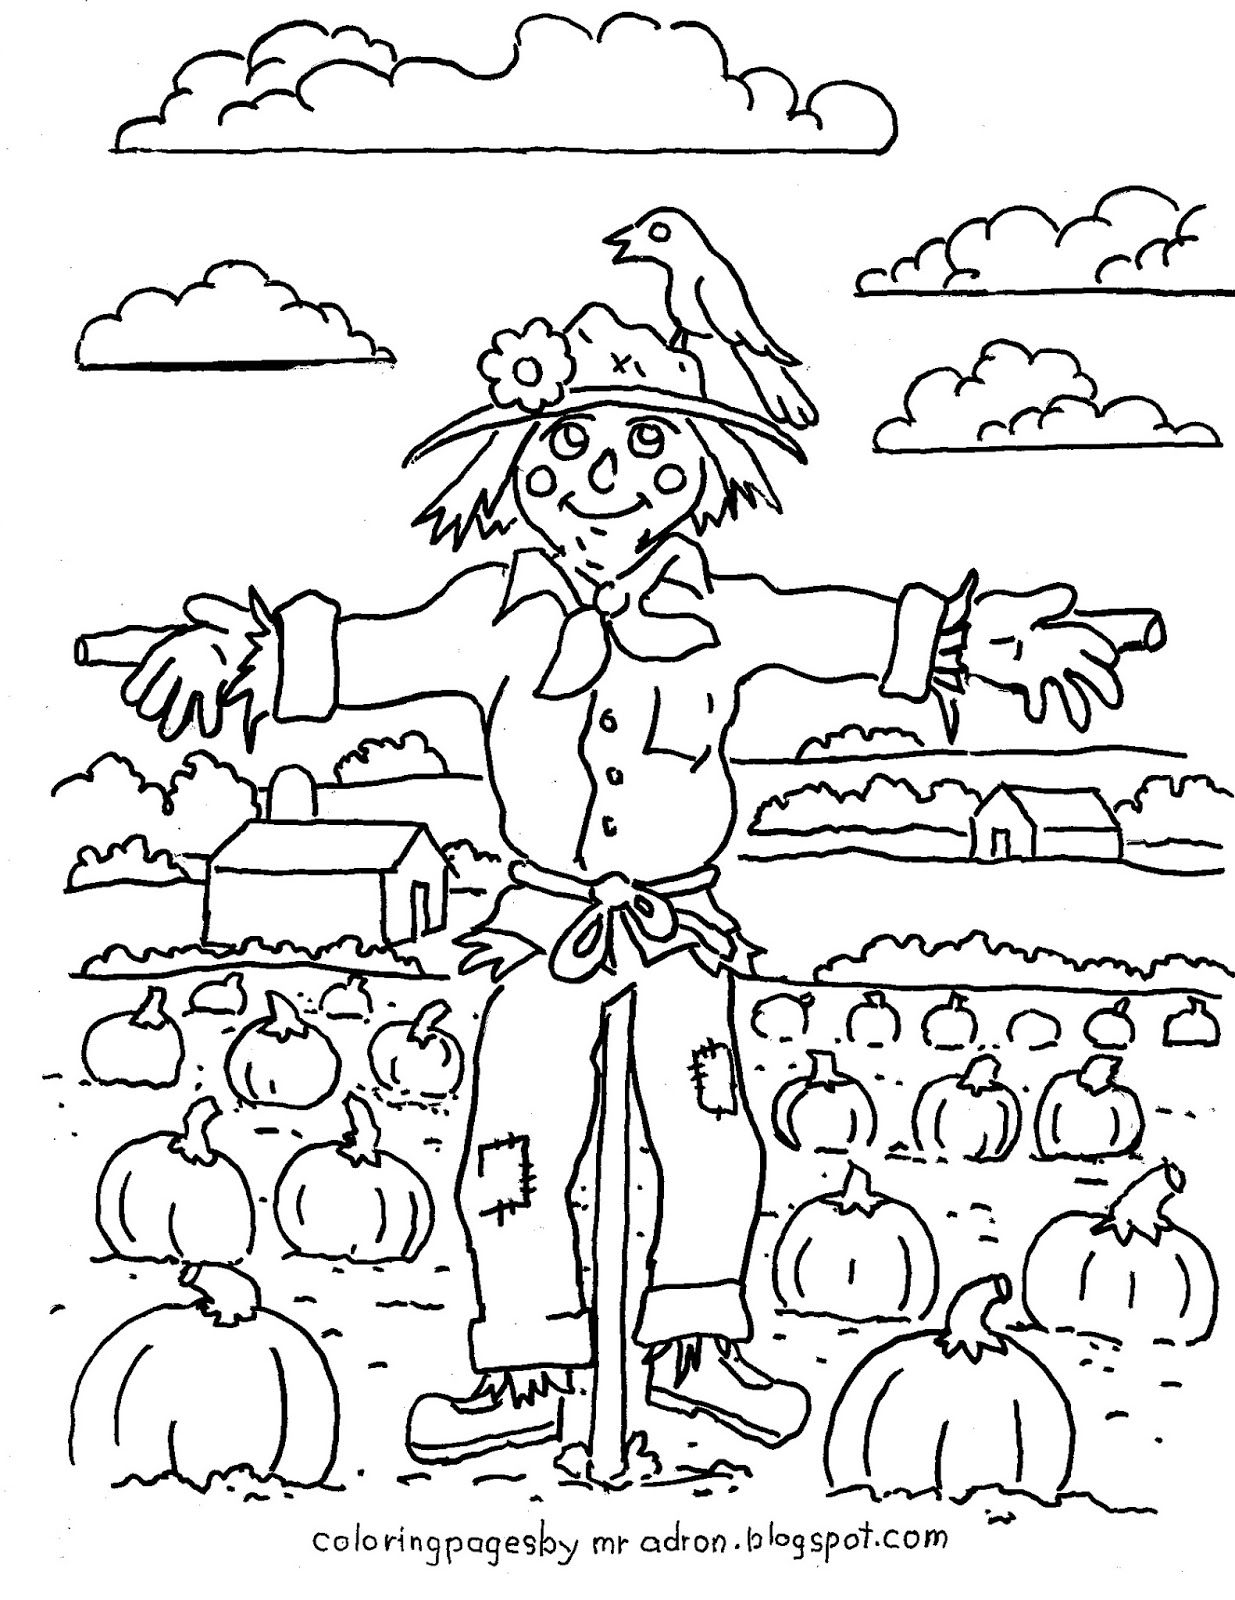 Coloring Pages For Kids By Mr Adron Printable Harvest Scarecrow Coloring Picture Print It And